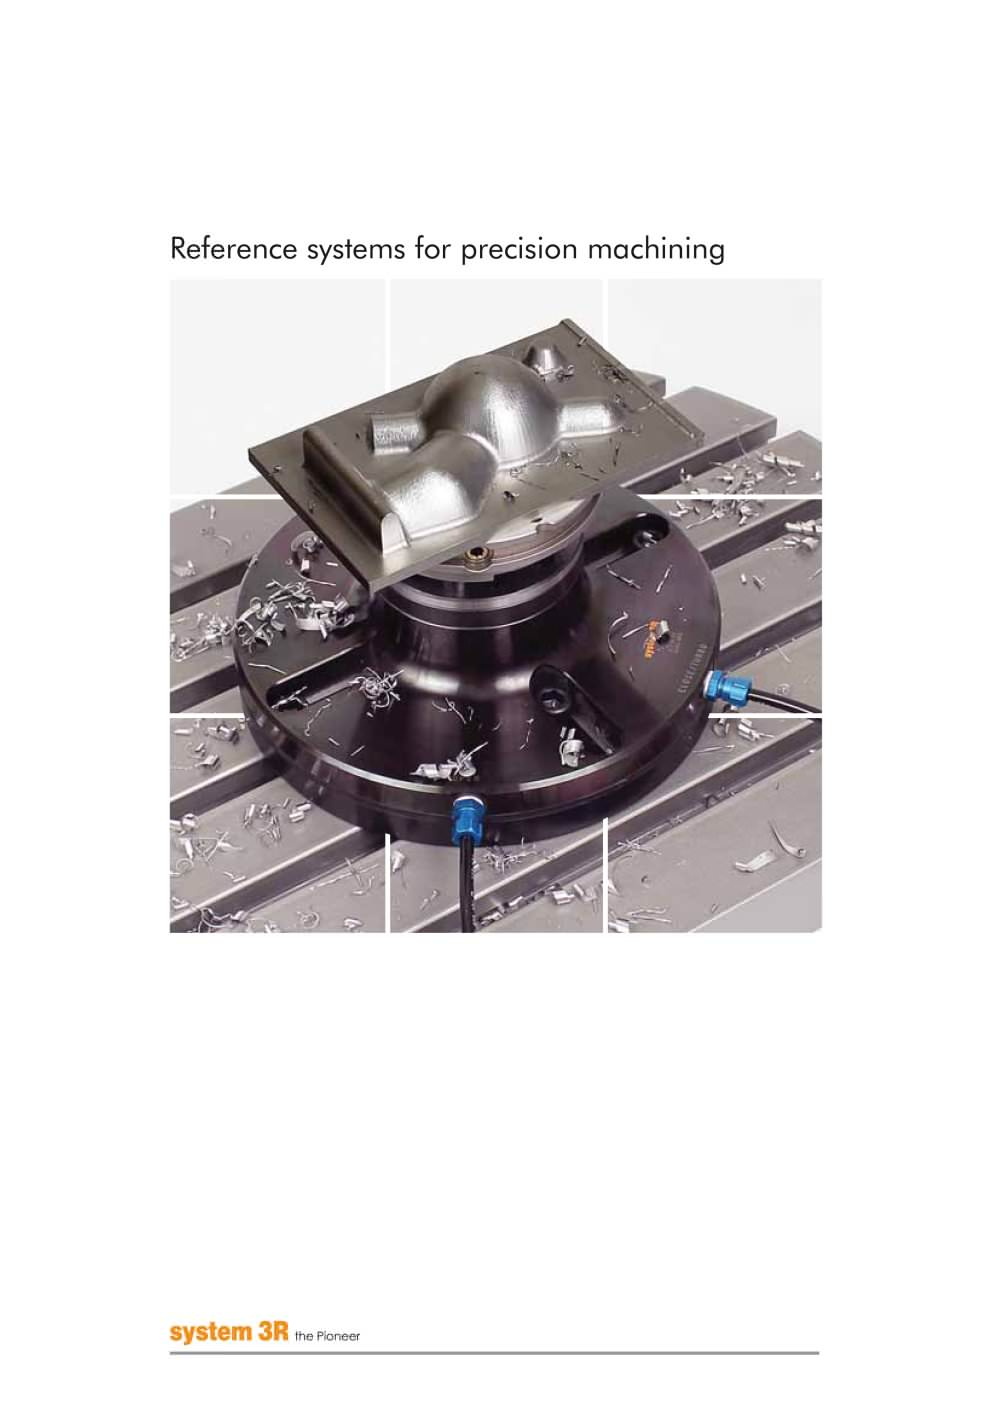 Reference systems for precision machining - SYSTEM 3R - PDF ...